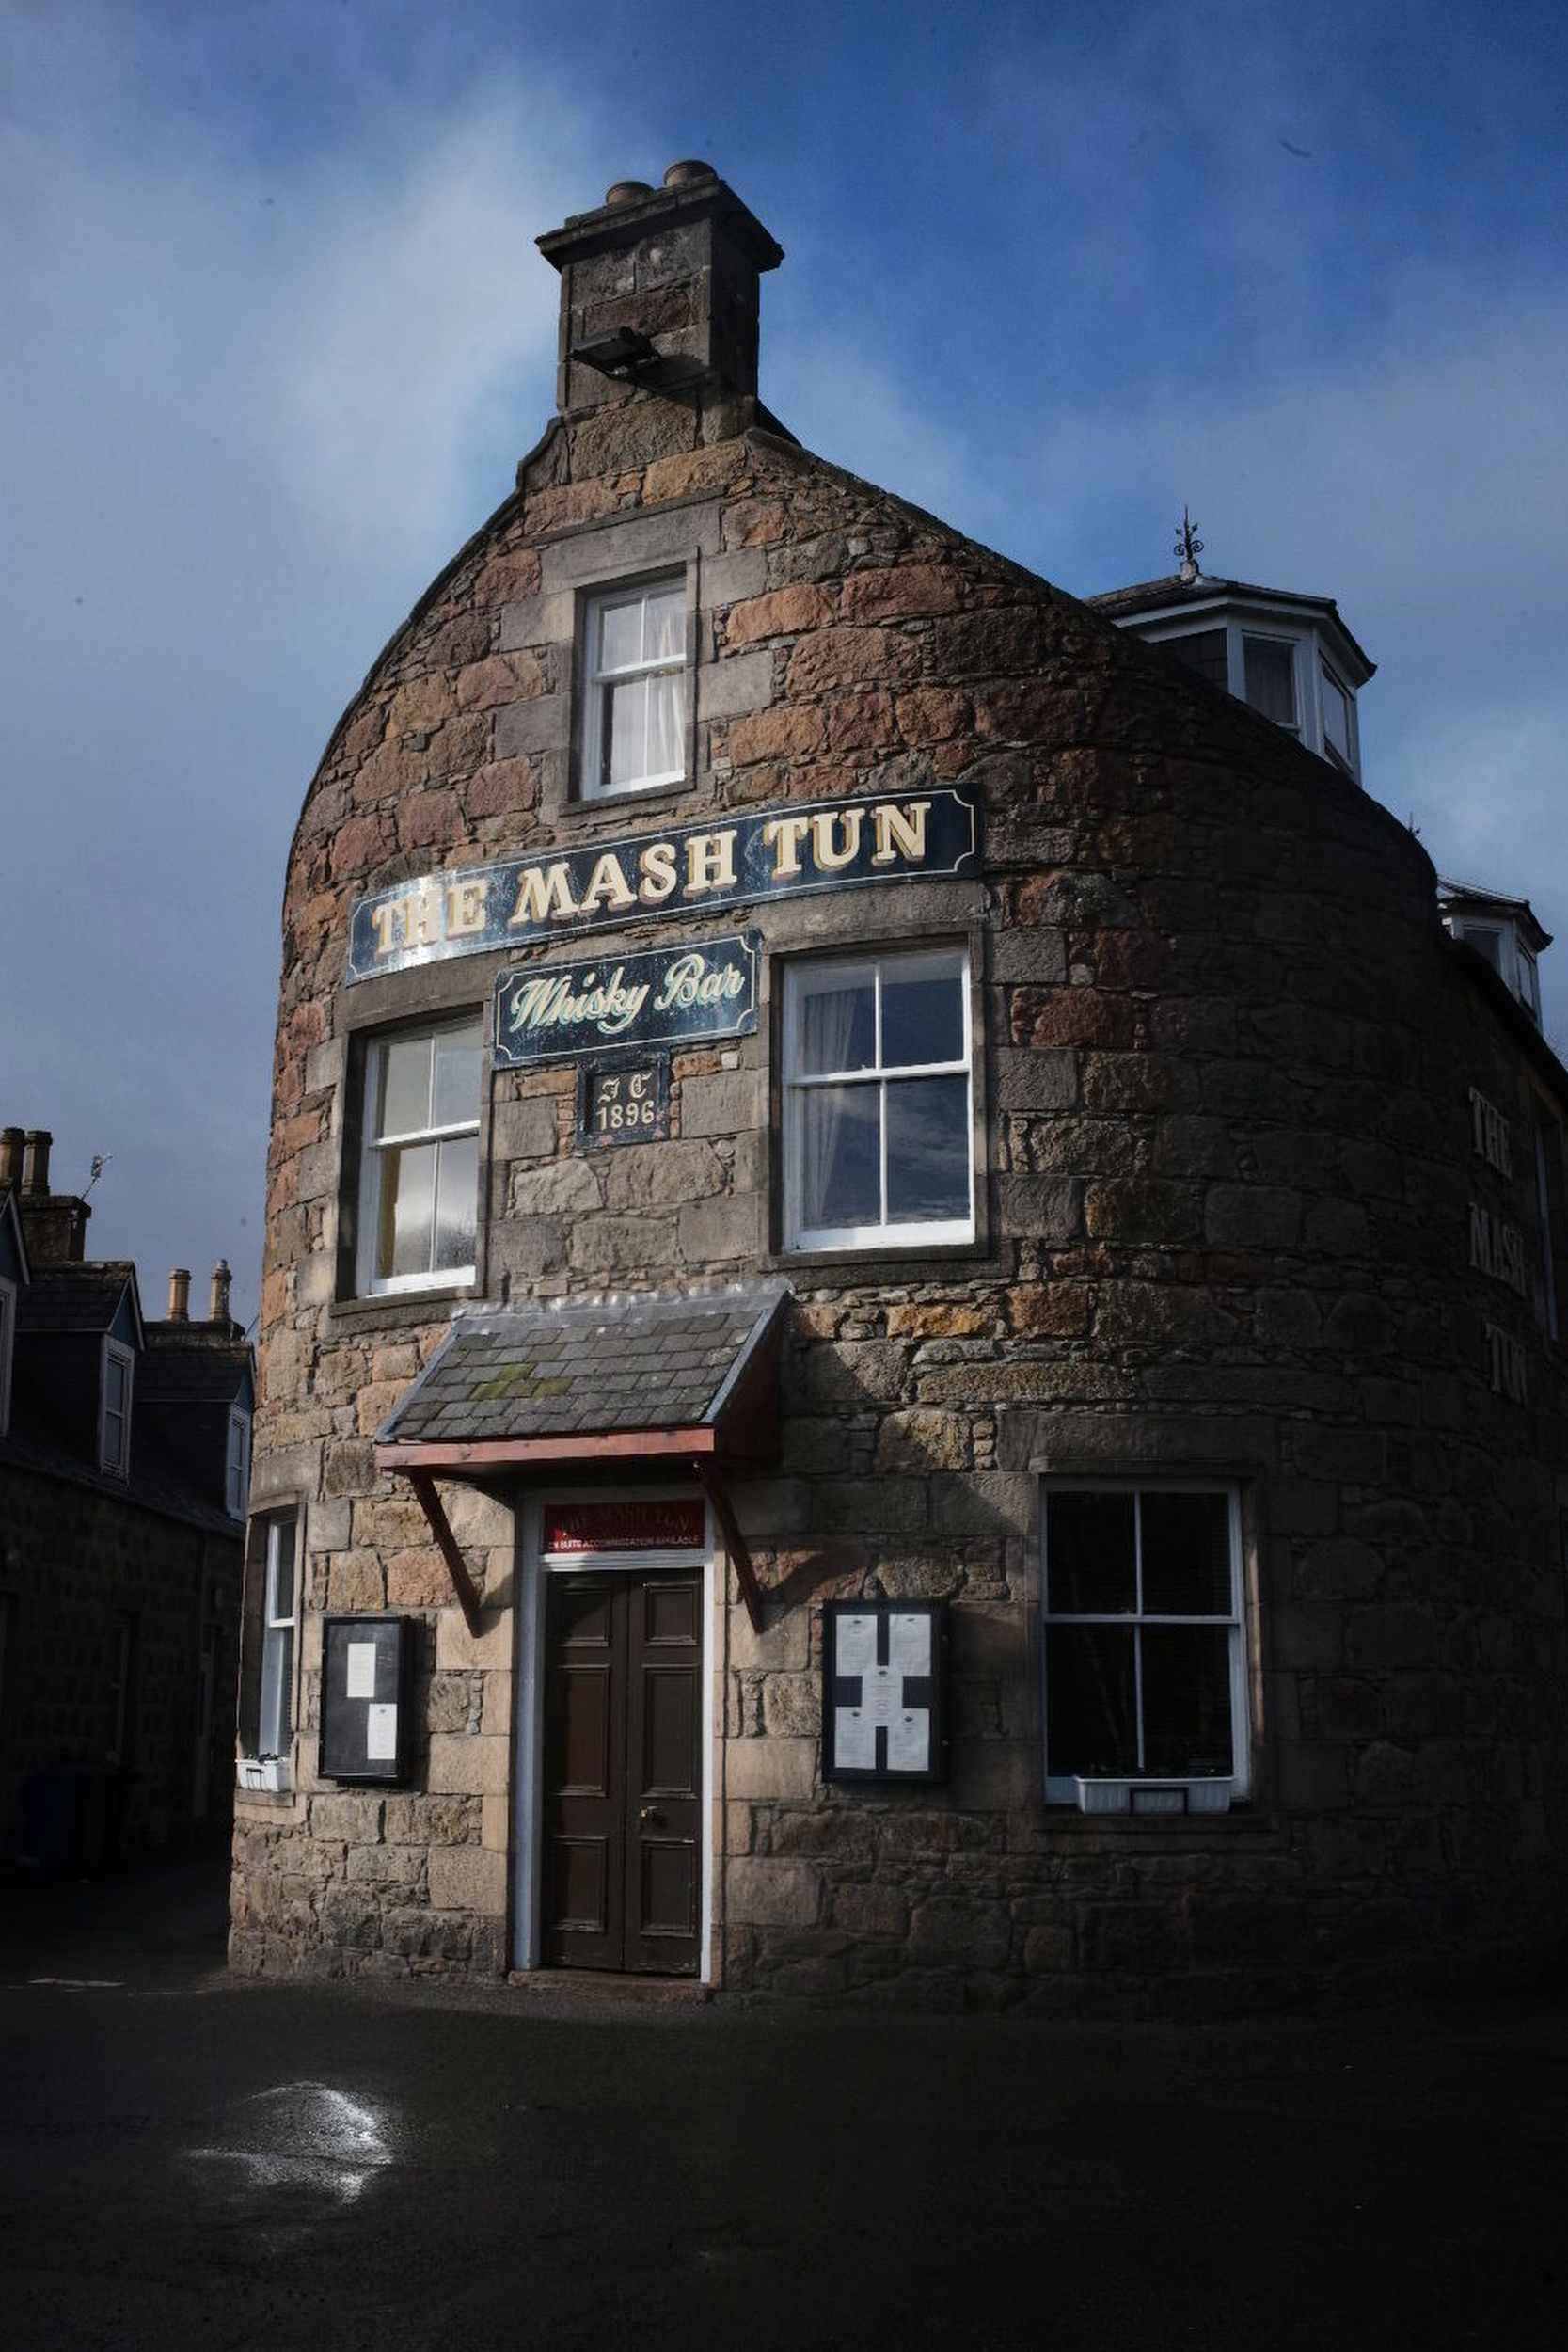 The Mash Tun Whisky Bar in Aberlour.